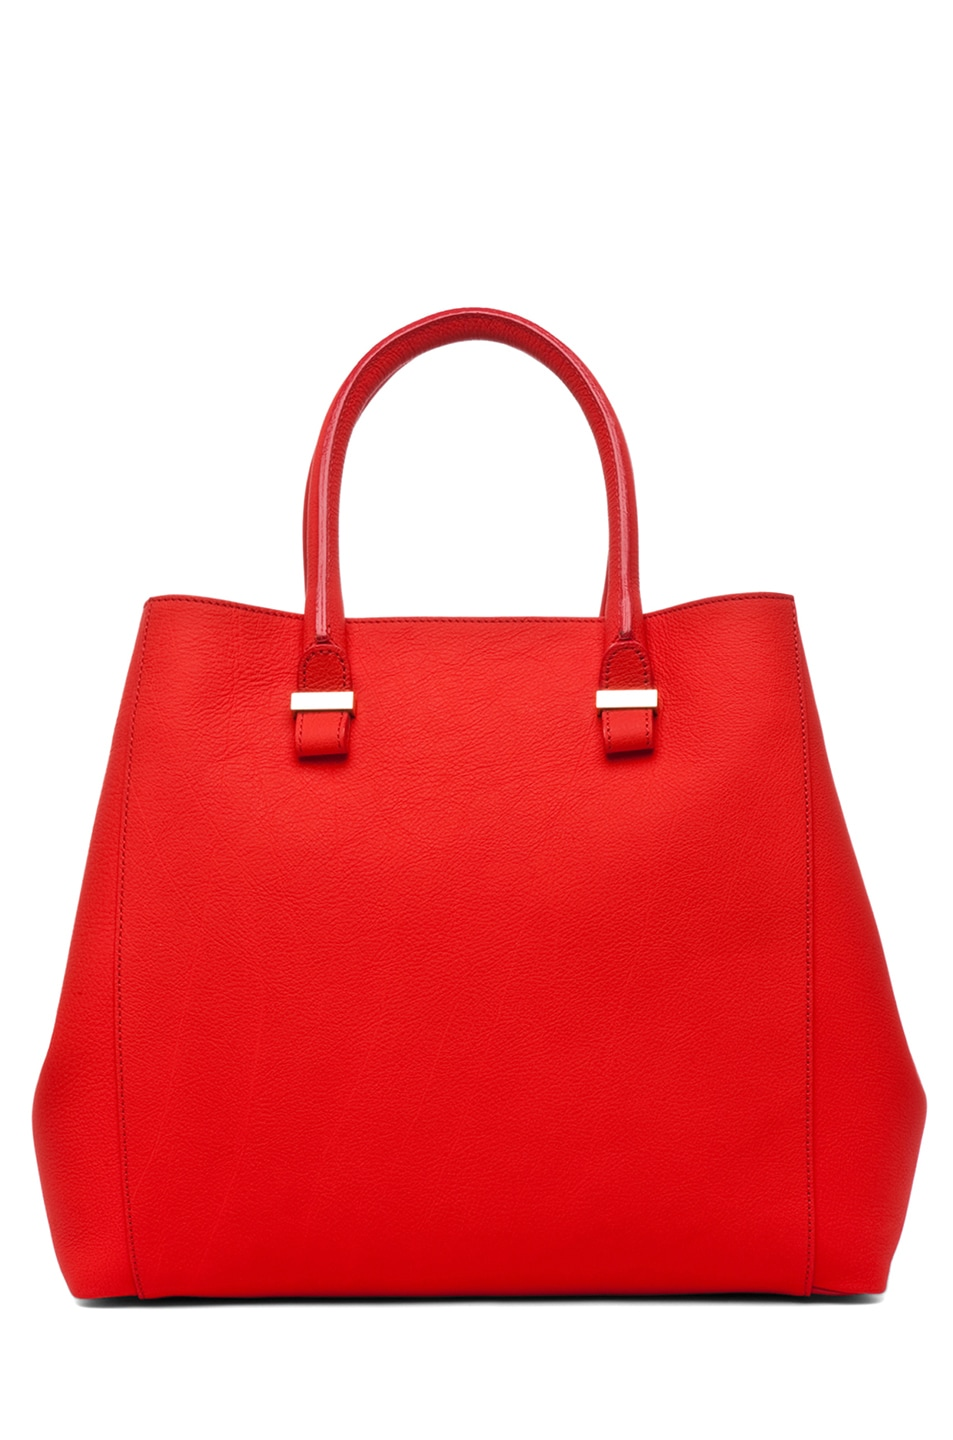 Image 1 of Victoria Beckham Georgia Tote in Sunset & Powder